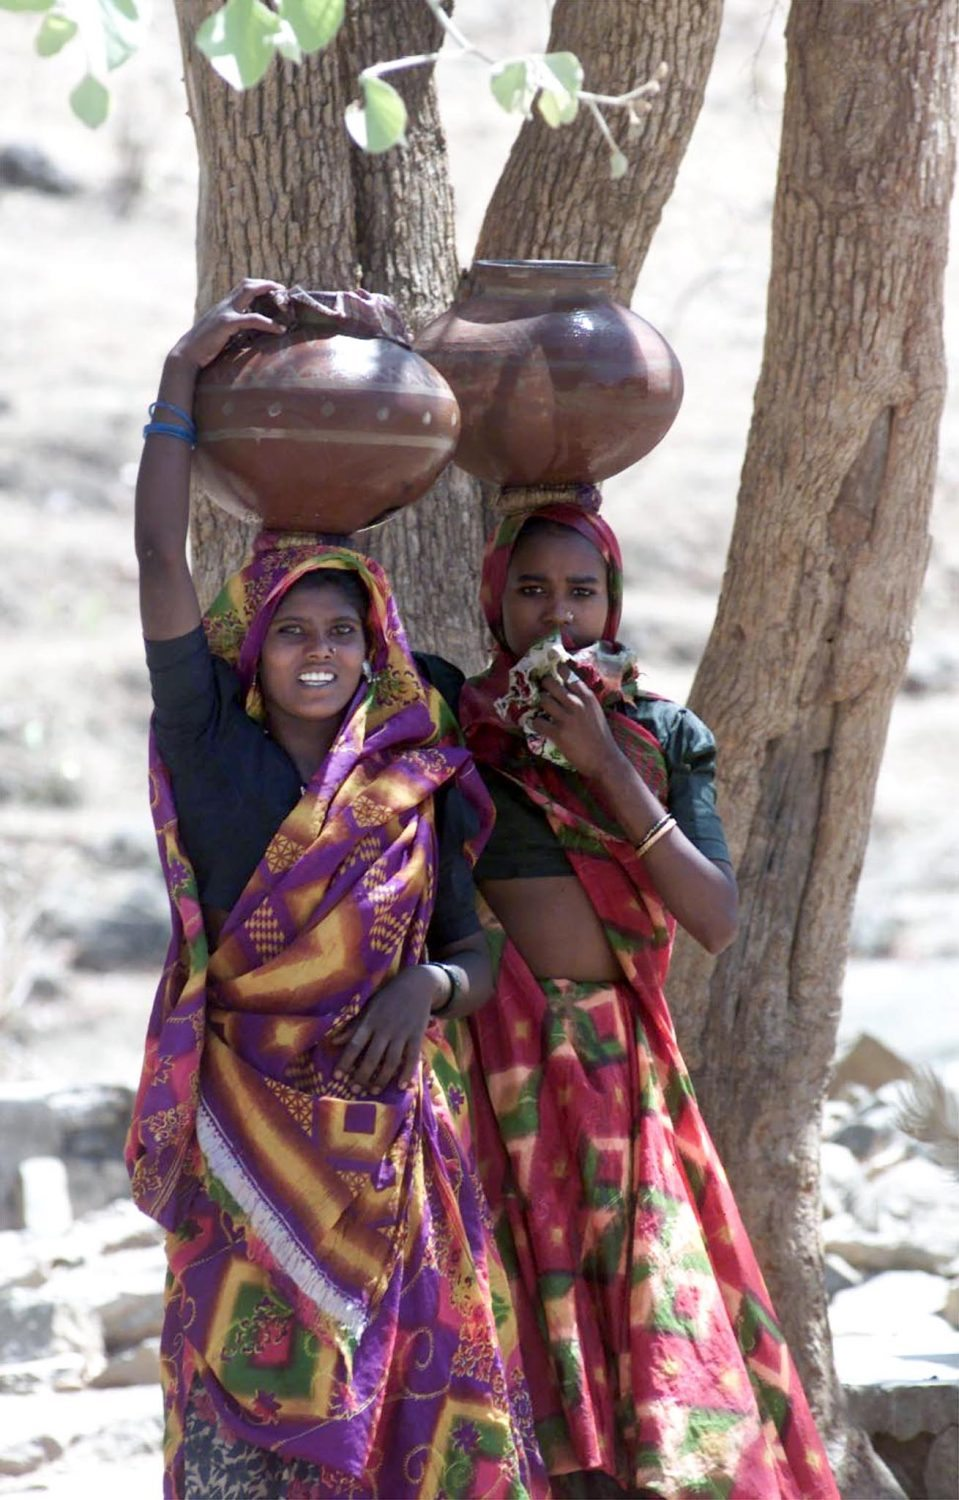 Women carry water drawn from a handpump at the village of Kalakhetar in India's western state of Rajasthan. Thousands of villages in Rajasthan are facing an acute shortage of water and animal feed with most sources of water having dried out in what is seen to be the worst drought in 100 years.